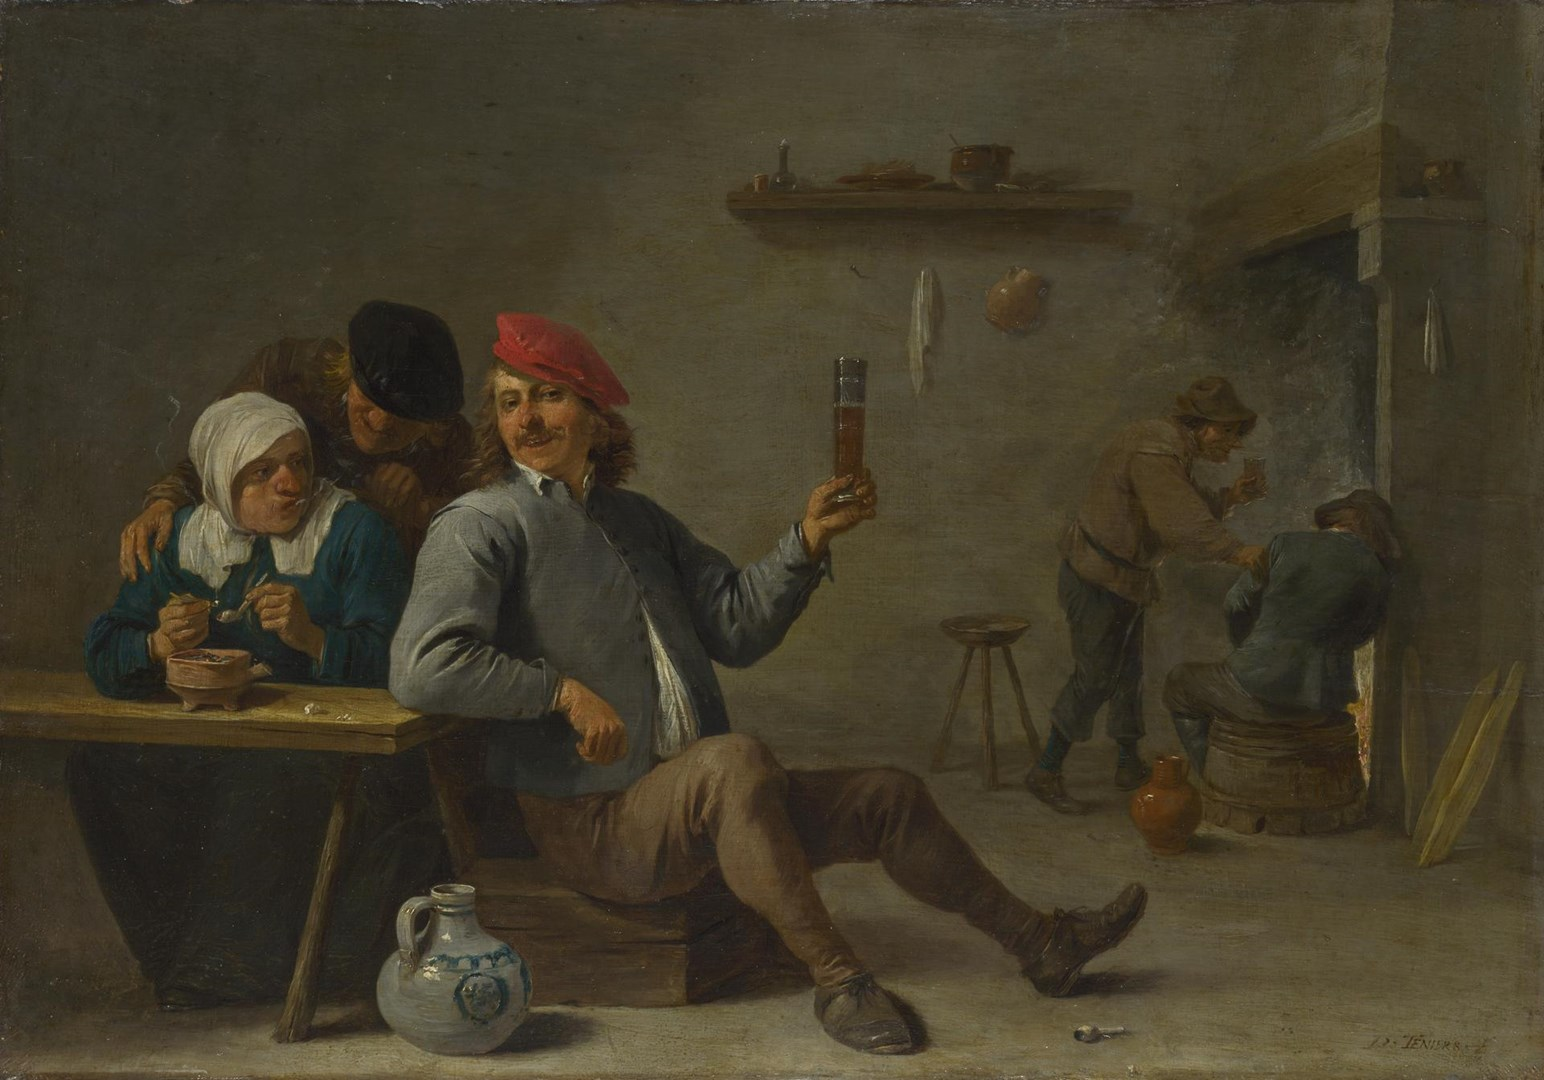 A Man holding a Glass and an Old Woman lighting a Pipe by David Teniers the Younger